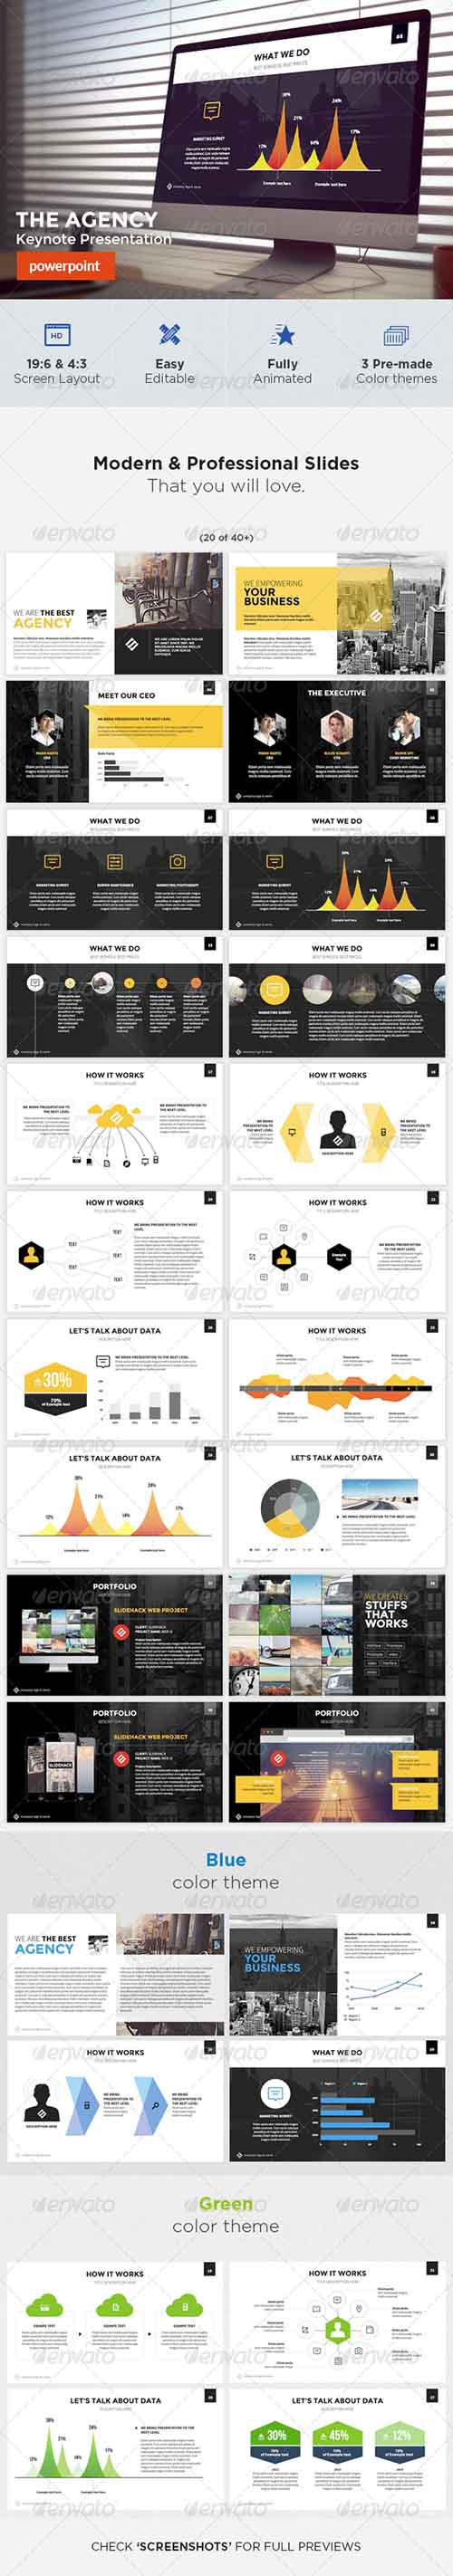 The Agency - Powerpoint Template 8004257